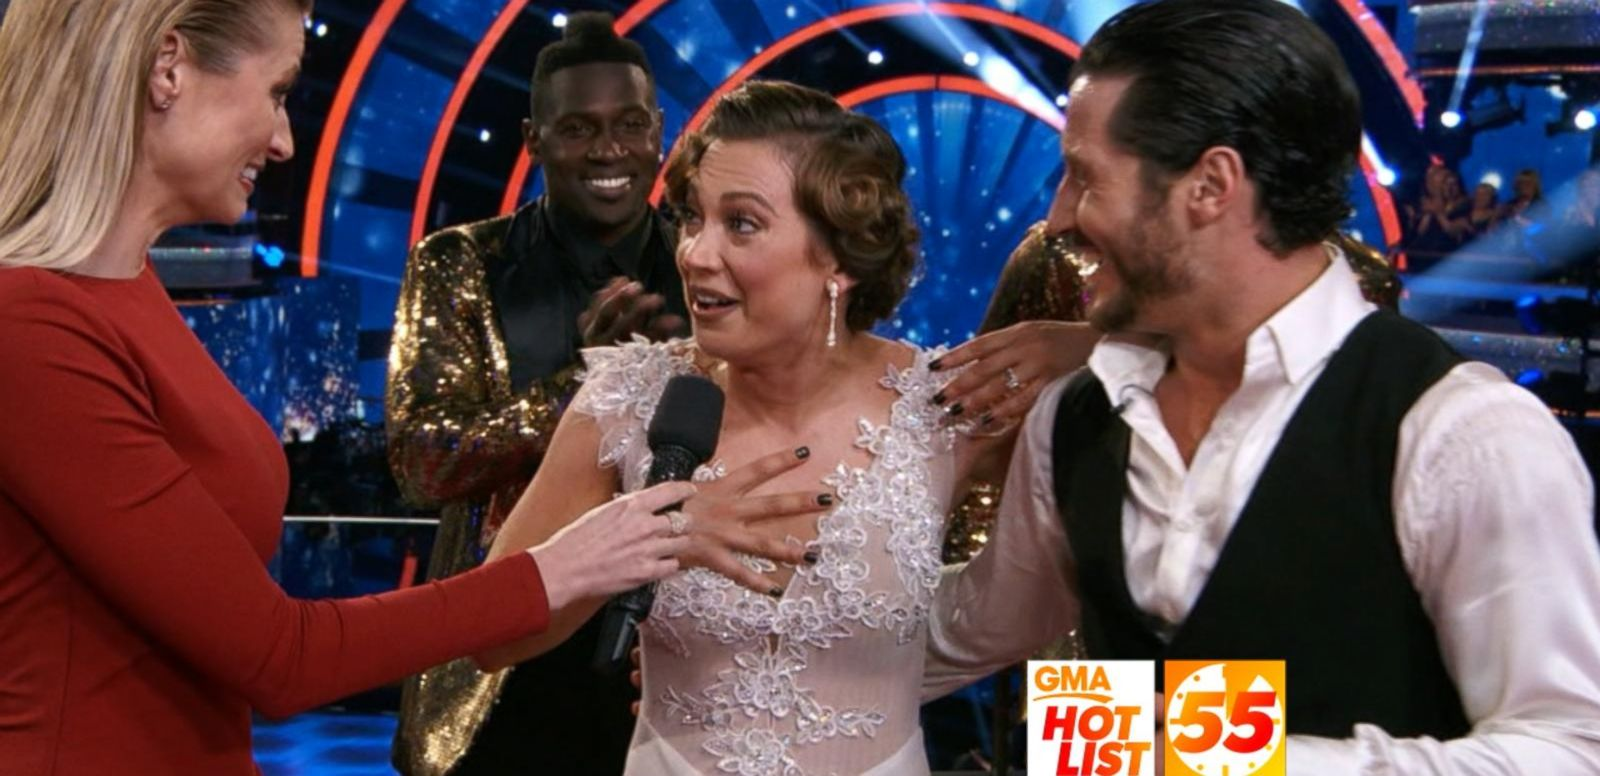 VIDEO: 'GMA' Hot List: Ginger Tops 'DWTS' and Met Ball Fashions